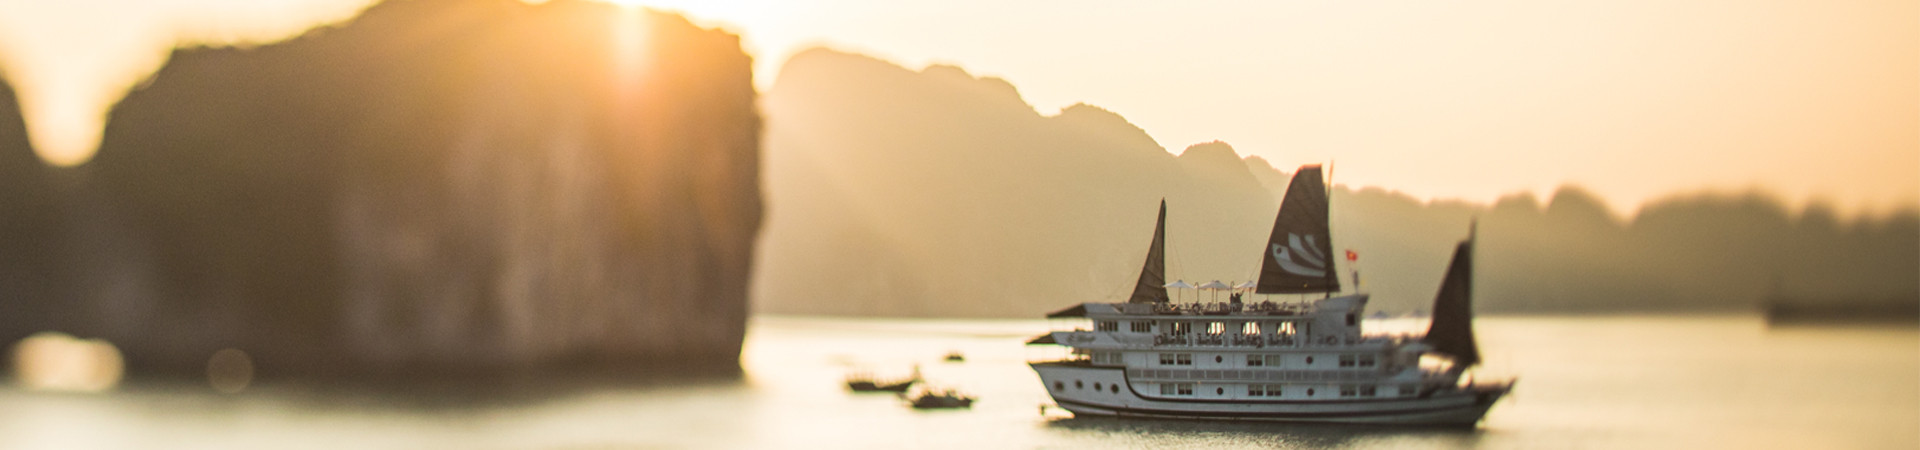 Bhaya Halong Bay Cruises Tripadvisor Reviews